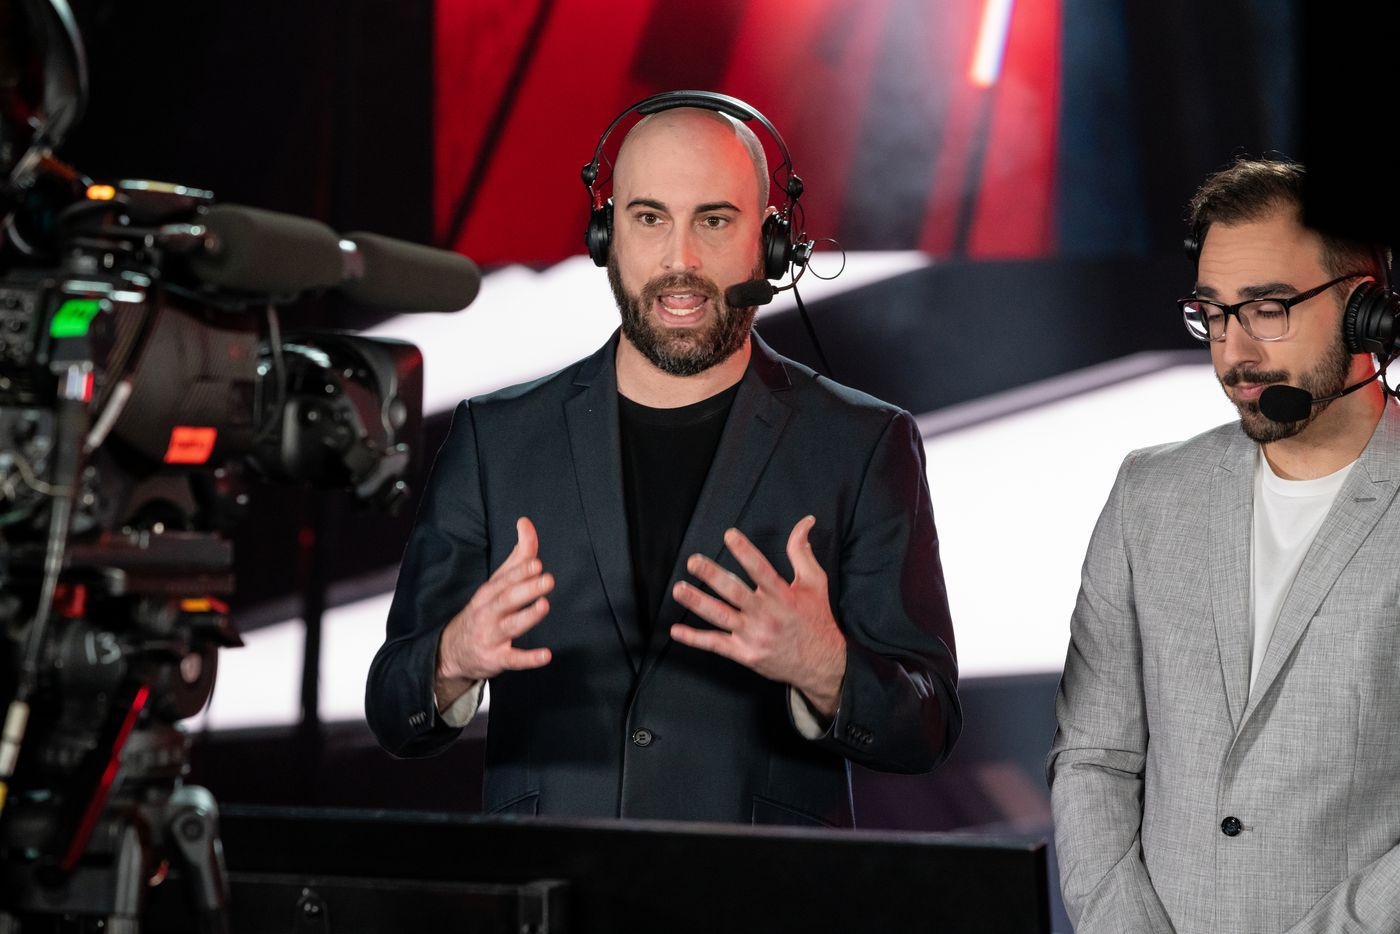 """From left, Caster Clint """"Maven"""" Evans gives the play by play and commentary with Joe """"MerK"""" Deluca during the championship match of the Call of Duty league playoffs at the Galen Center on Sunday, August 22, 2021 in Los Angeles, California. The Atlanta FaZe faced off against the Toronto Ultra for the championship title. (Justin L. Stewart/Special Contributor)"""